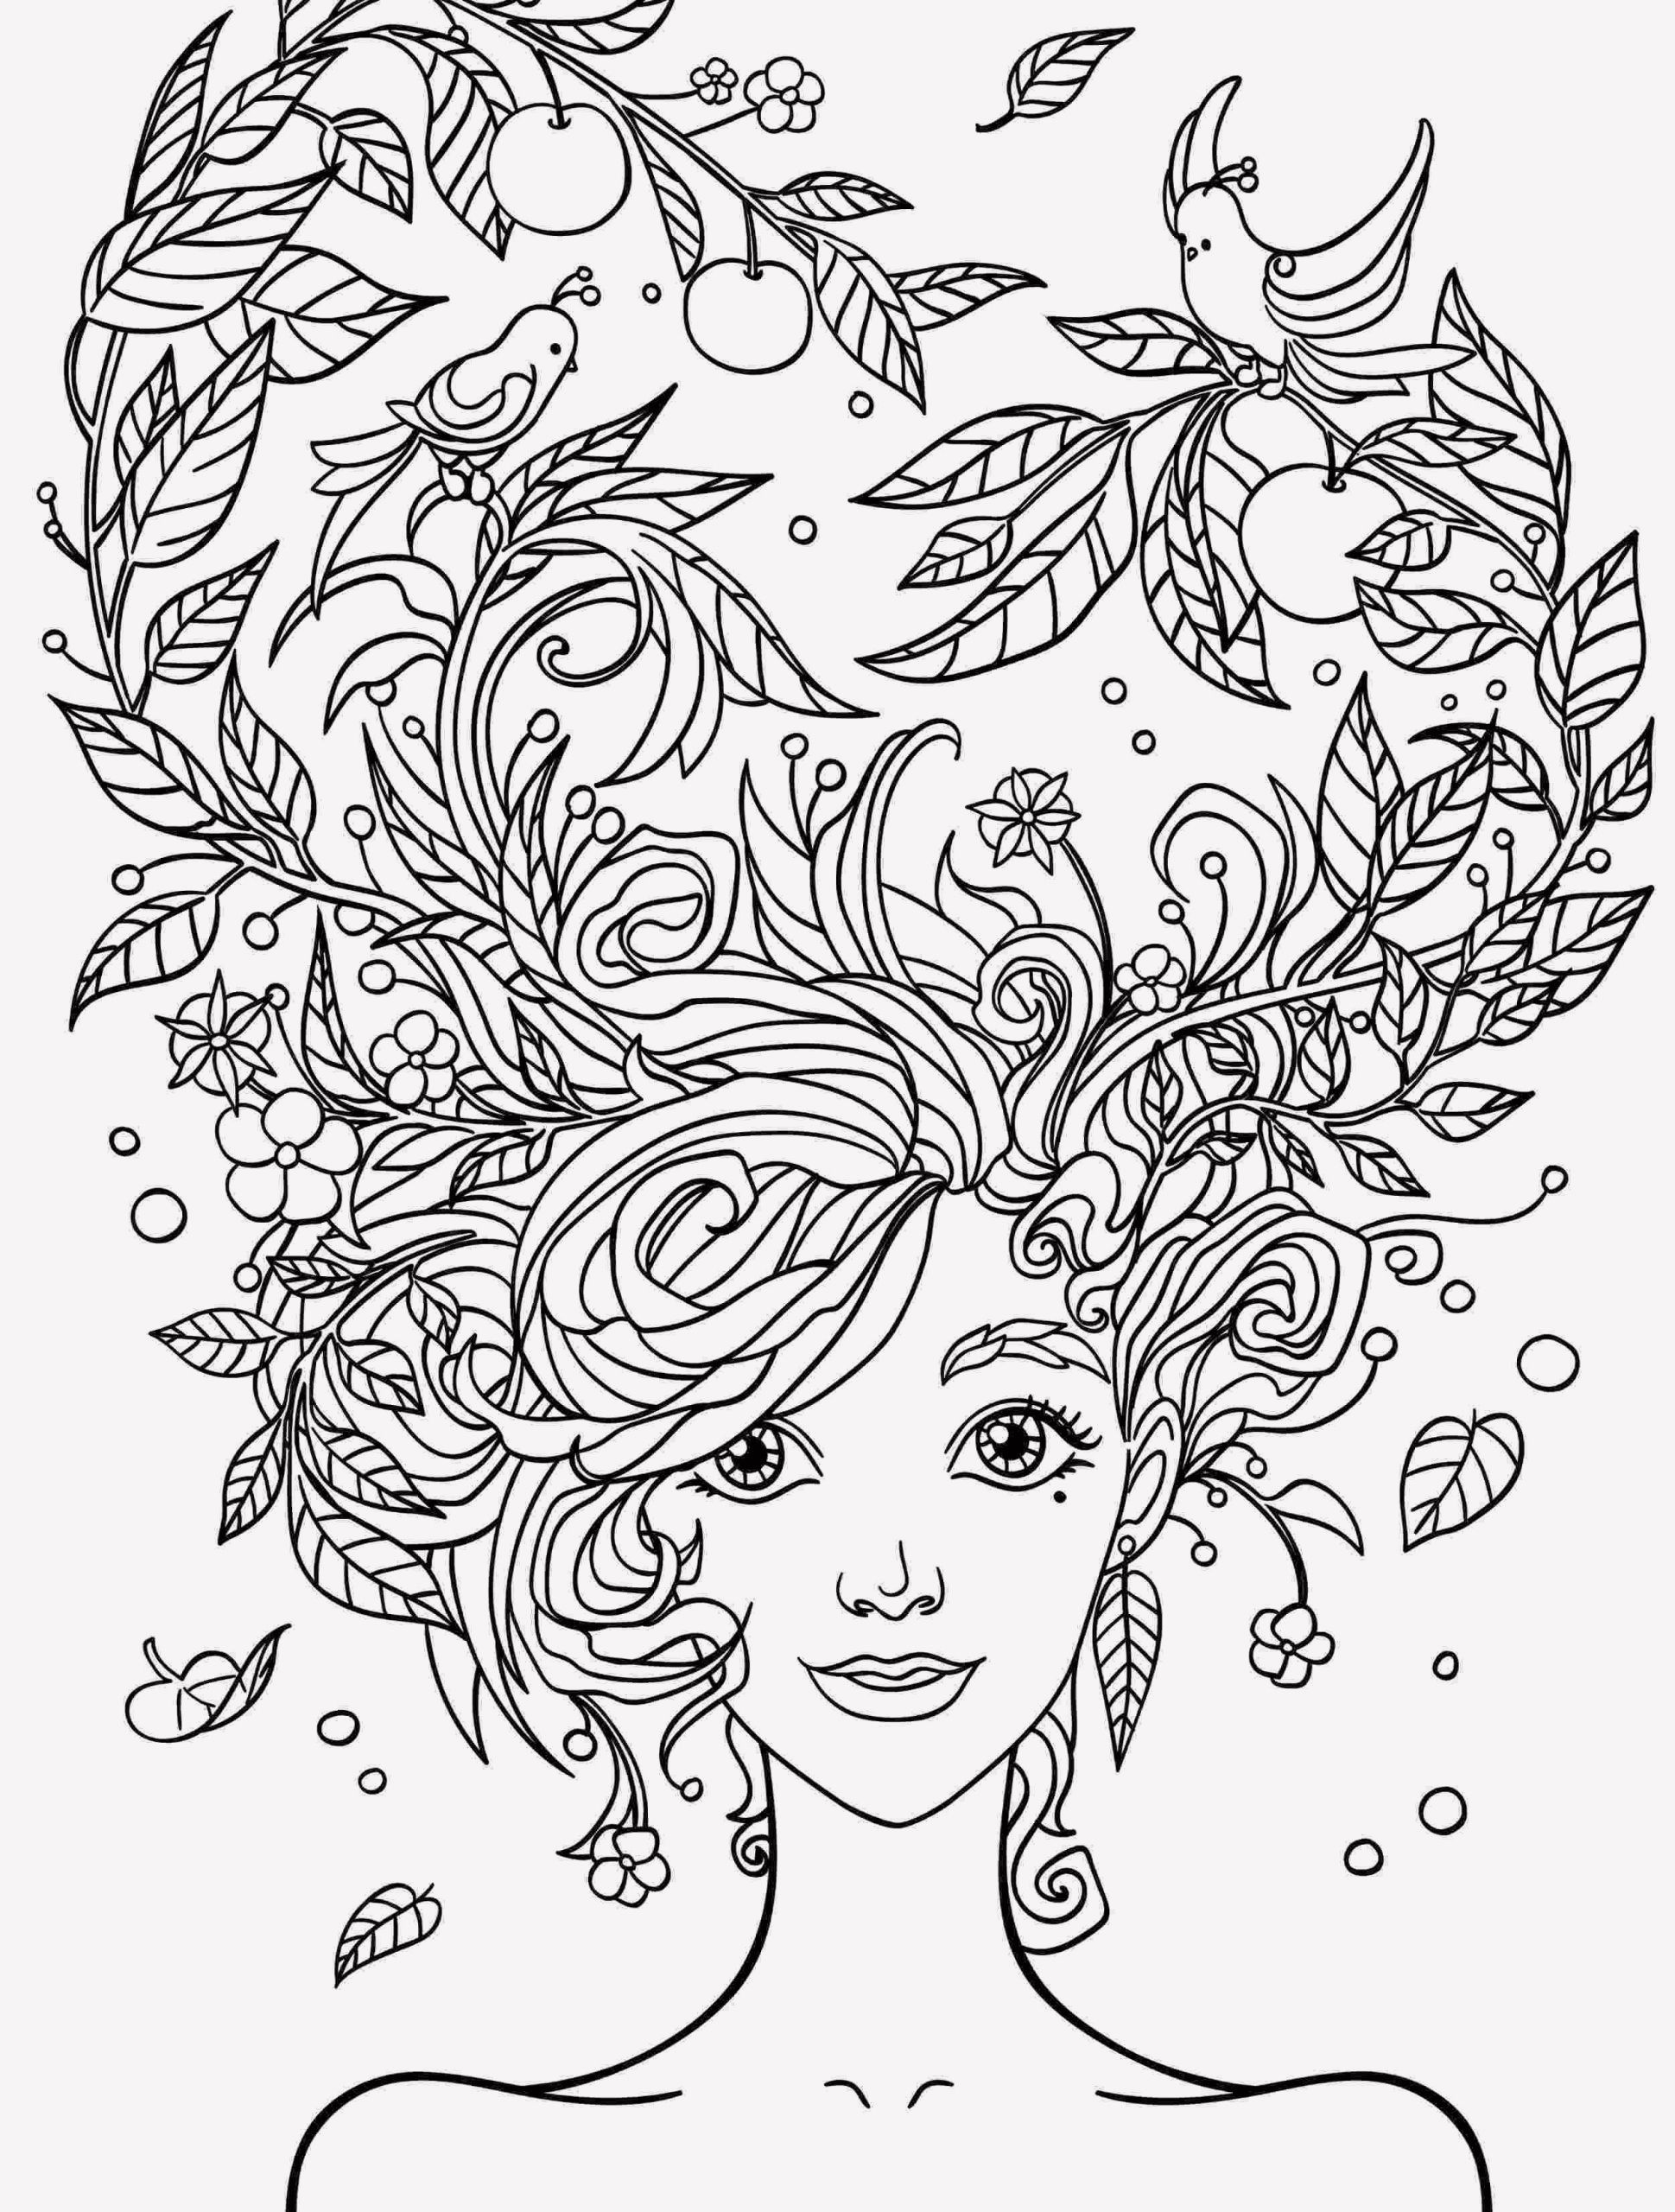 17 Printable Coloring Pages For Adults With Dementia Cool Coloring Pages Animal Coloring Pages People Coloring Pages